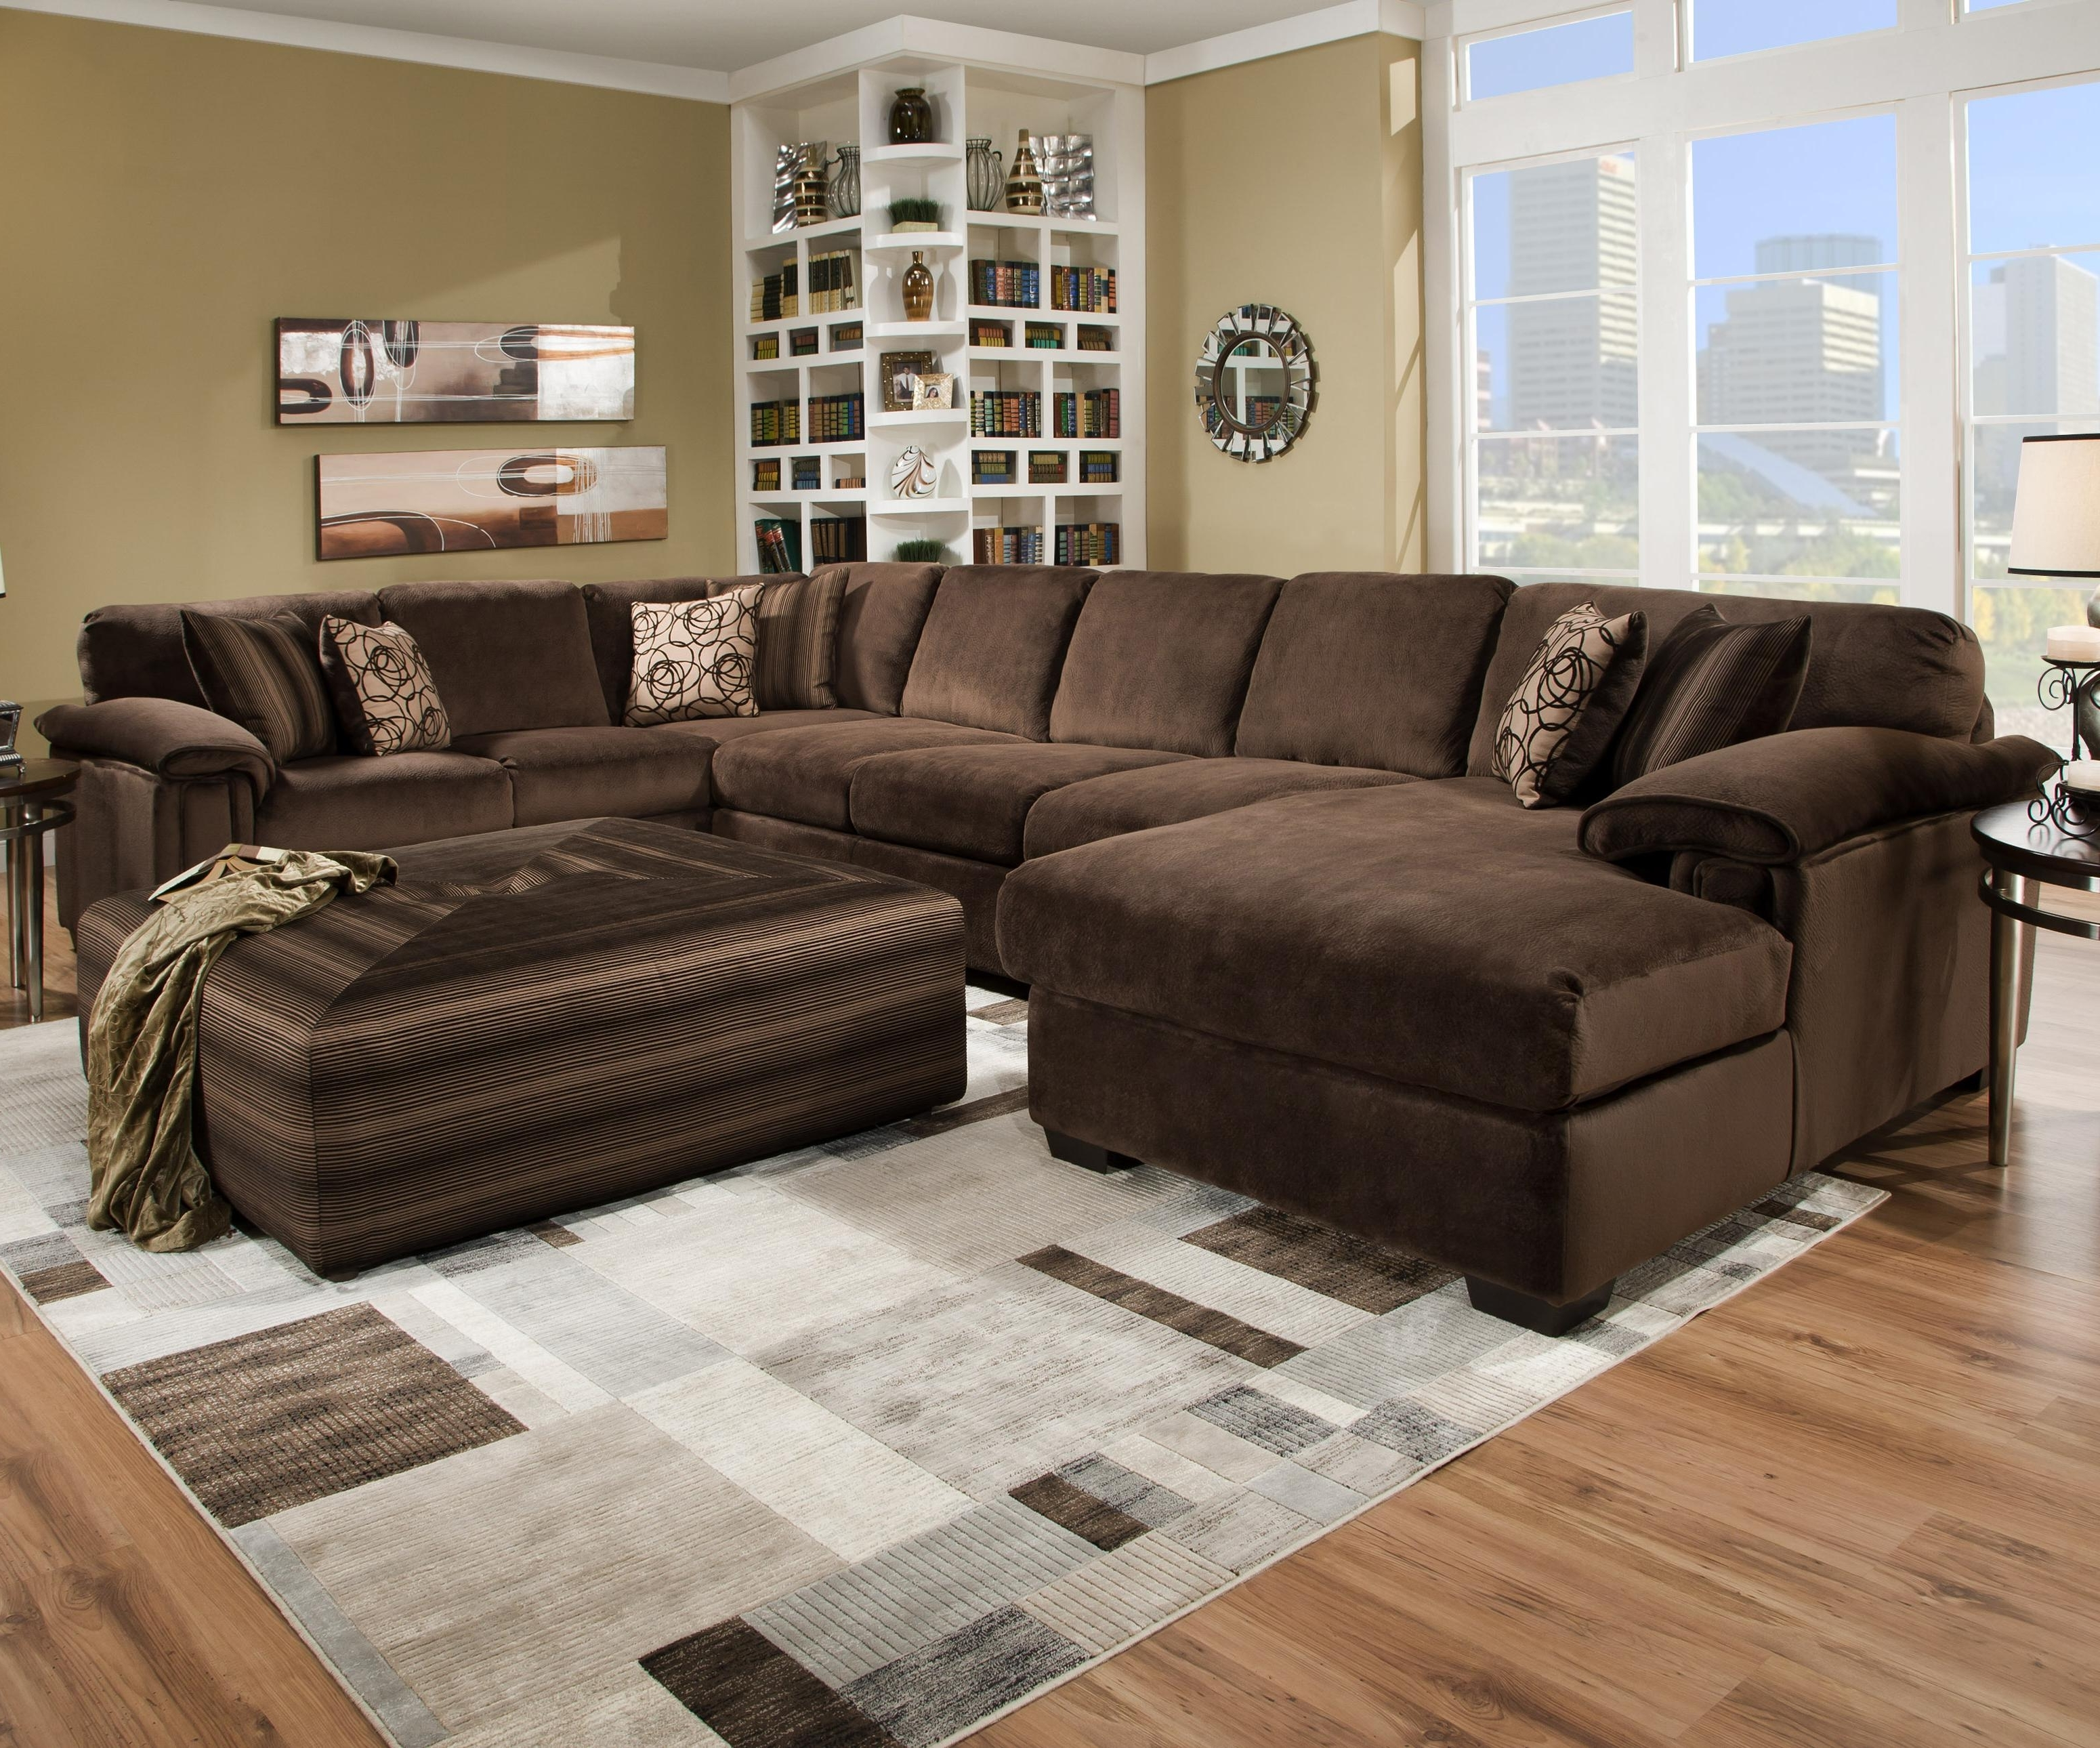 Oversized Ottoman Coffee Tables Within 2017 Sectional Sofas With Oversized Ottoman (View 6 of 15)